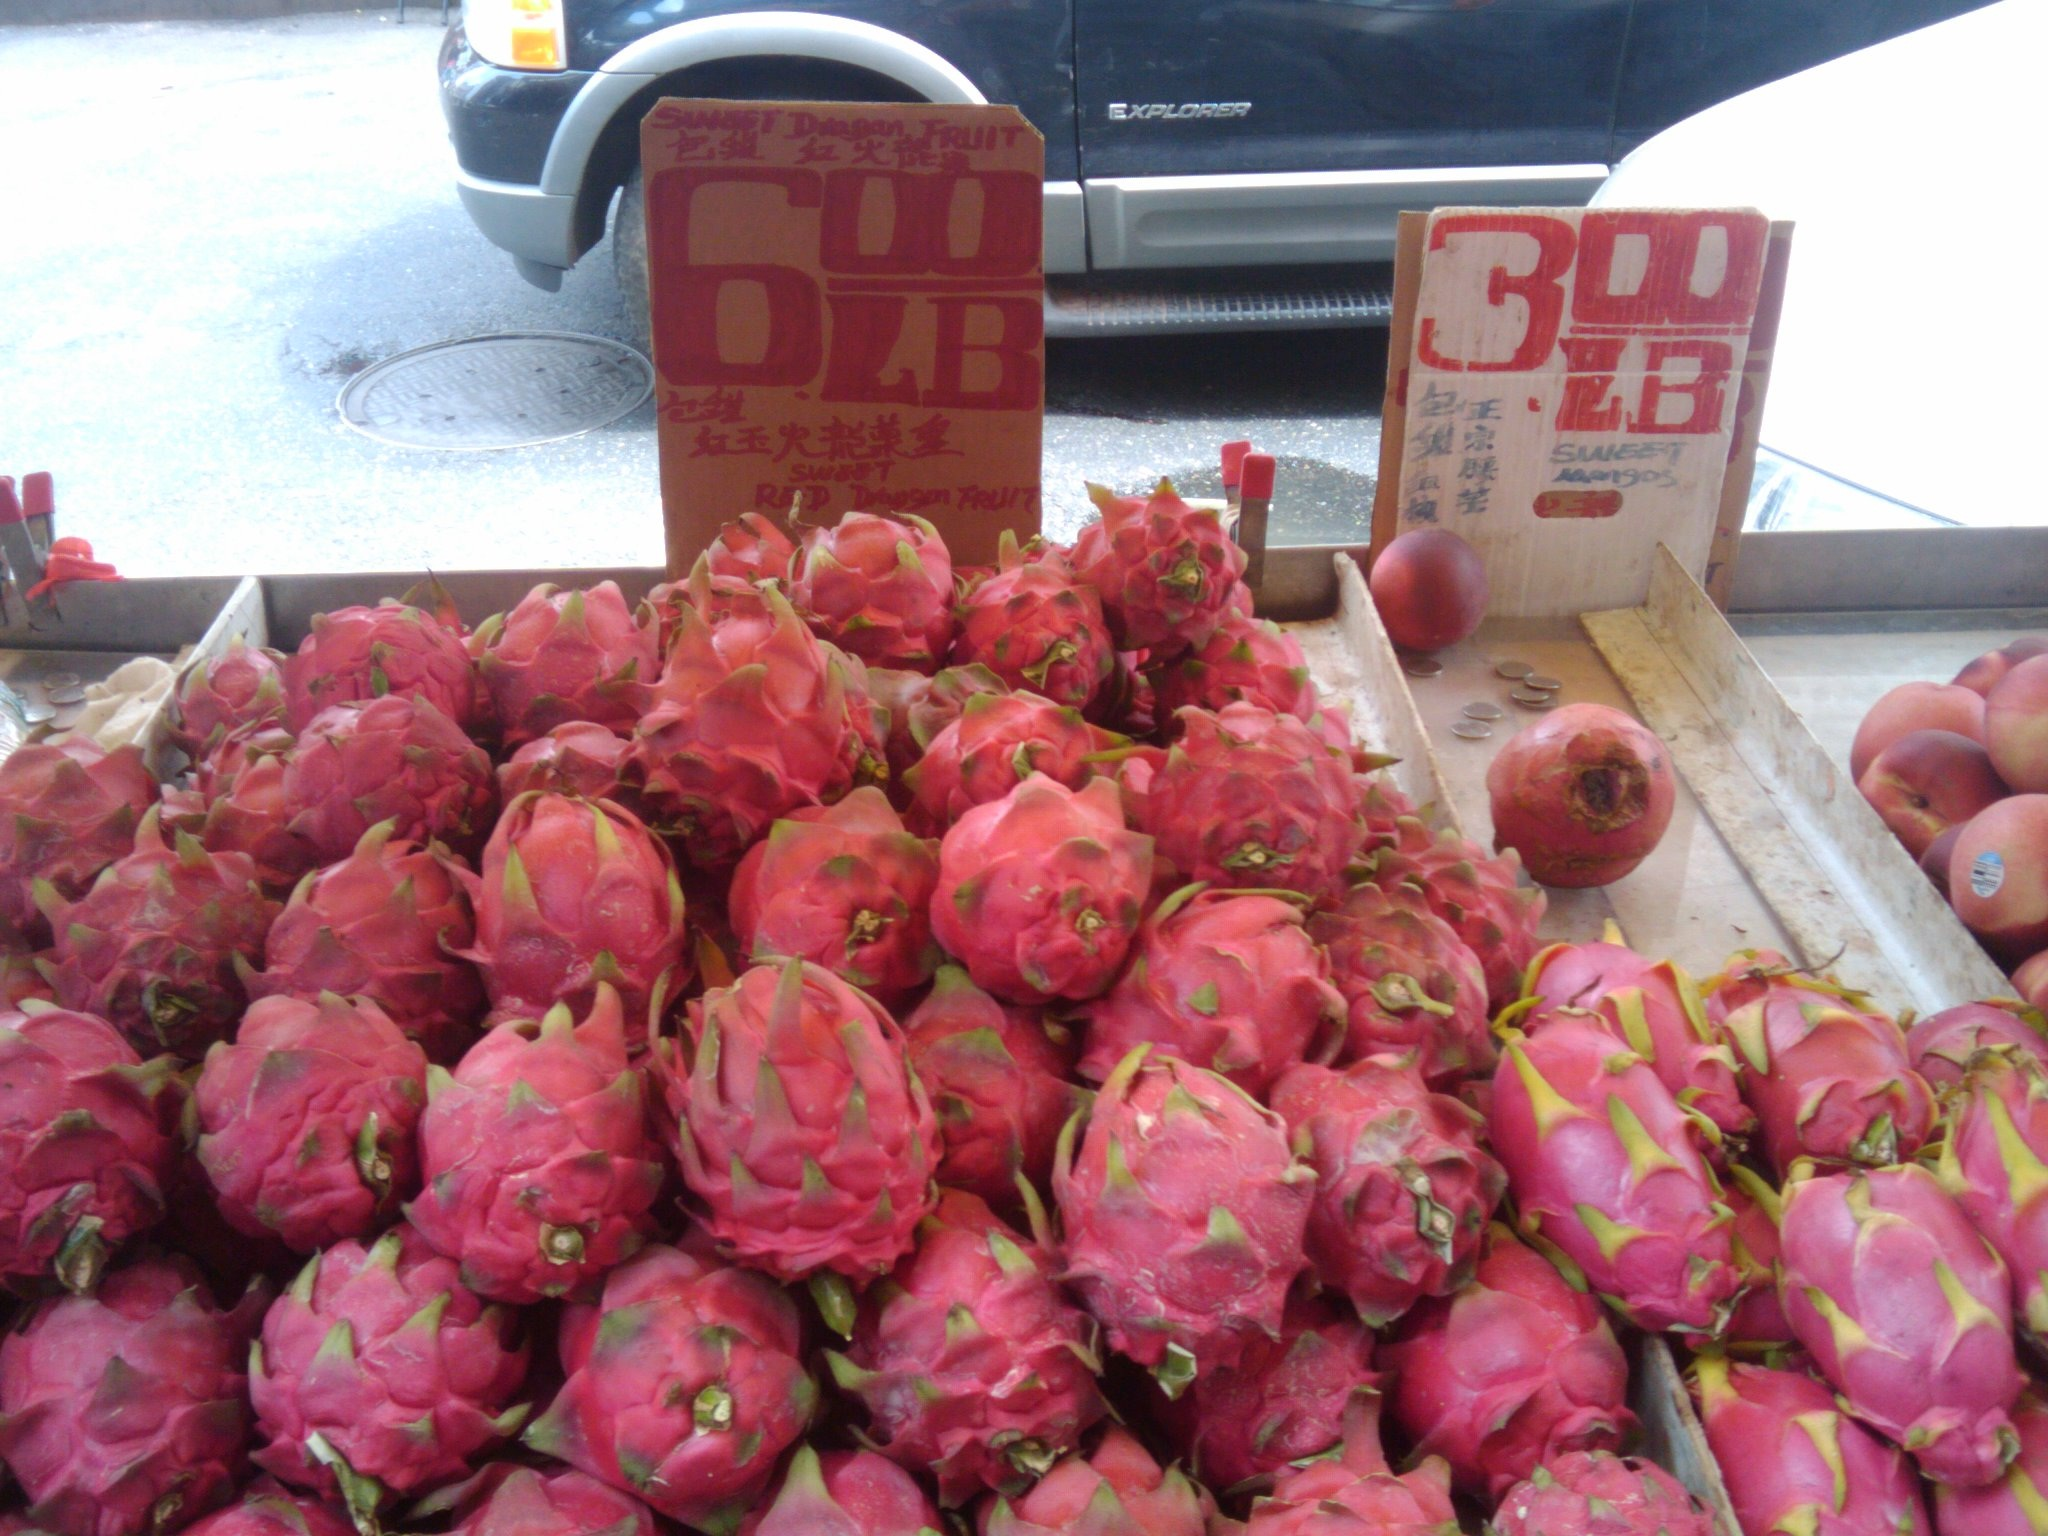 Dragon fruit comes in three colors white pink and red or magenta white - The Small Black Seeds